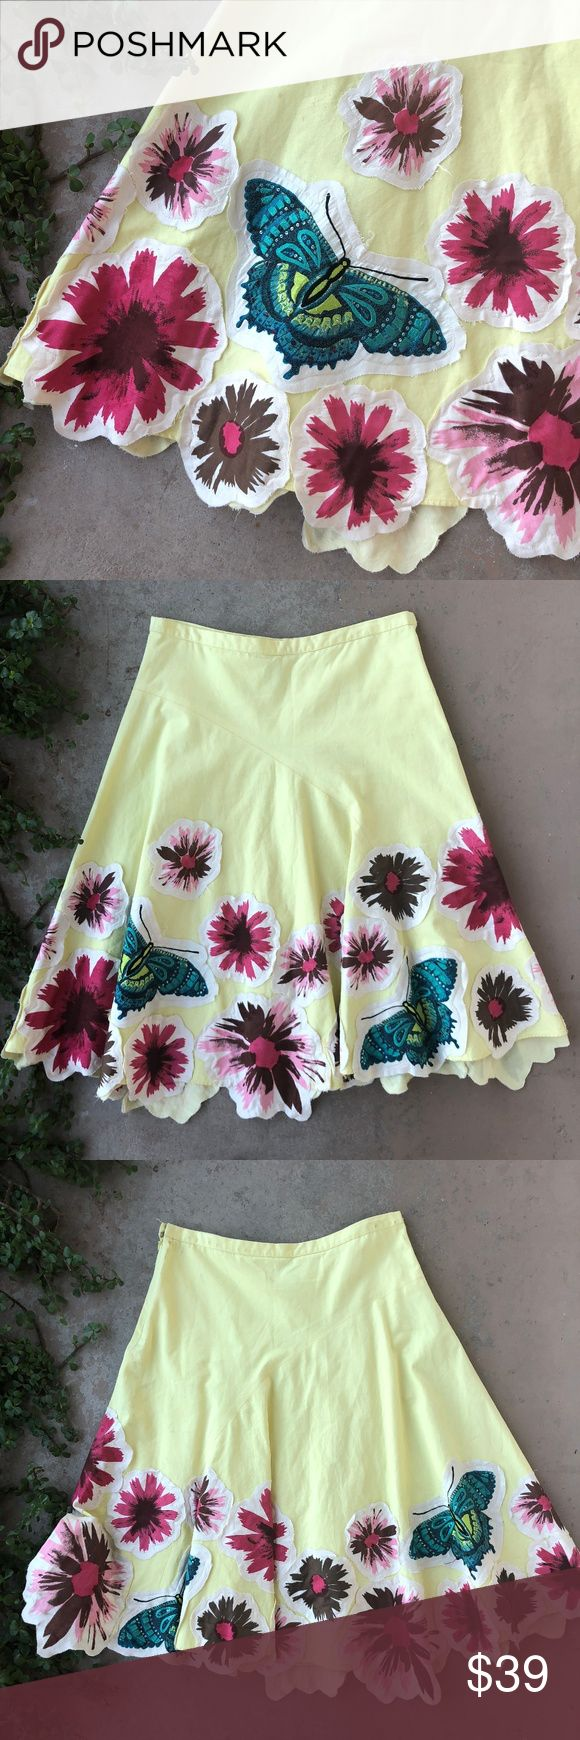 """Anthropologie Odille Yellow A-Line Butterfly Skirt Yellow A-Line tea length skirt by Odille from Anthropologie. Features darling butterfly and floral patches along the bottom for an asymmetrical hemline. 100% cotton. Size 6 and measures about 15"""" across the waist and 25"""" long. In excellent condition, no flaws! Anthropologie Skirts Midi"""